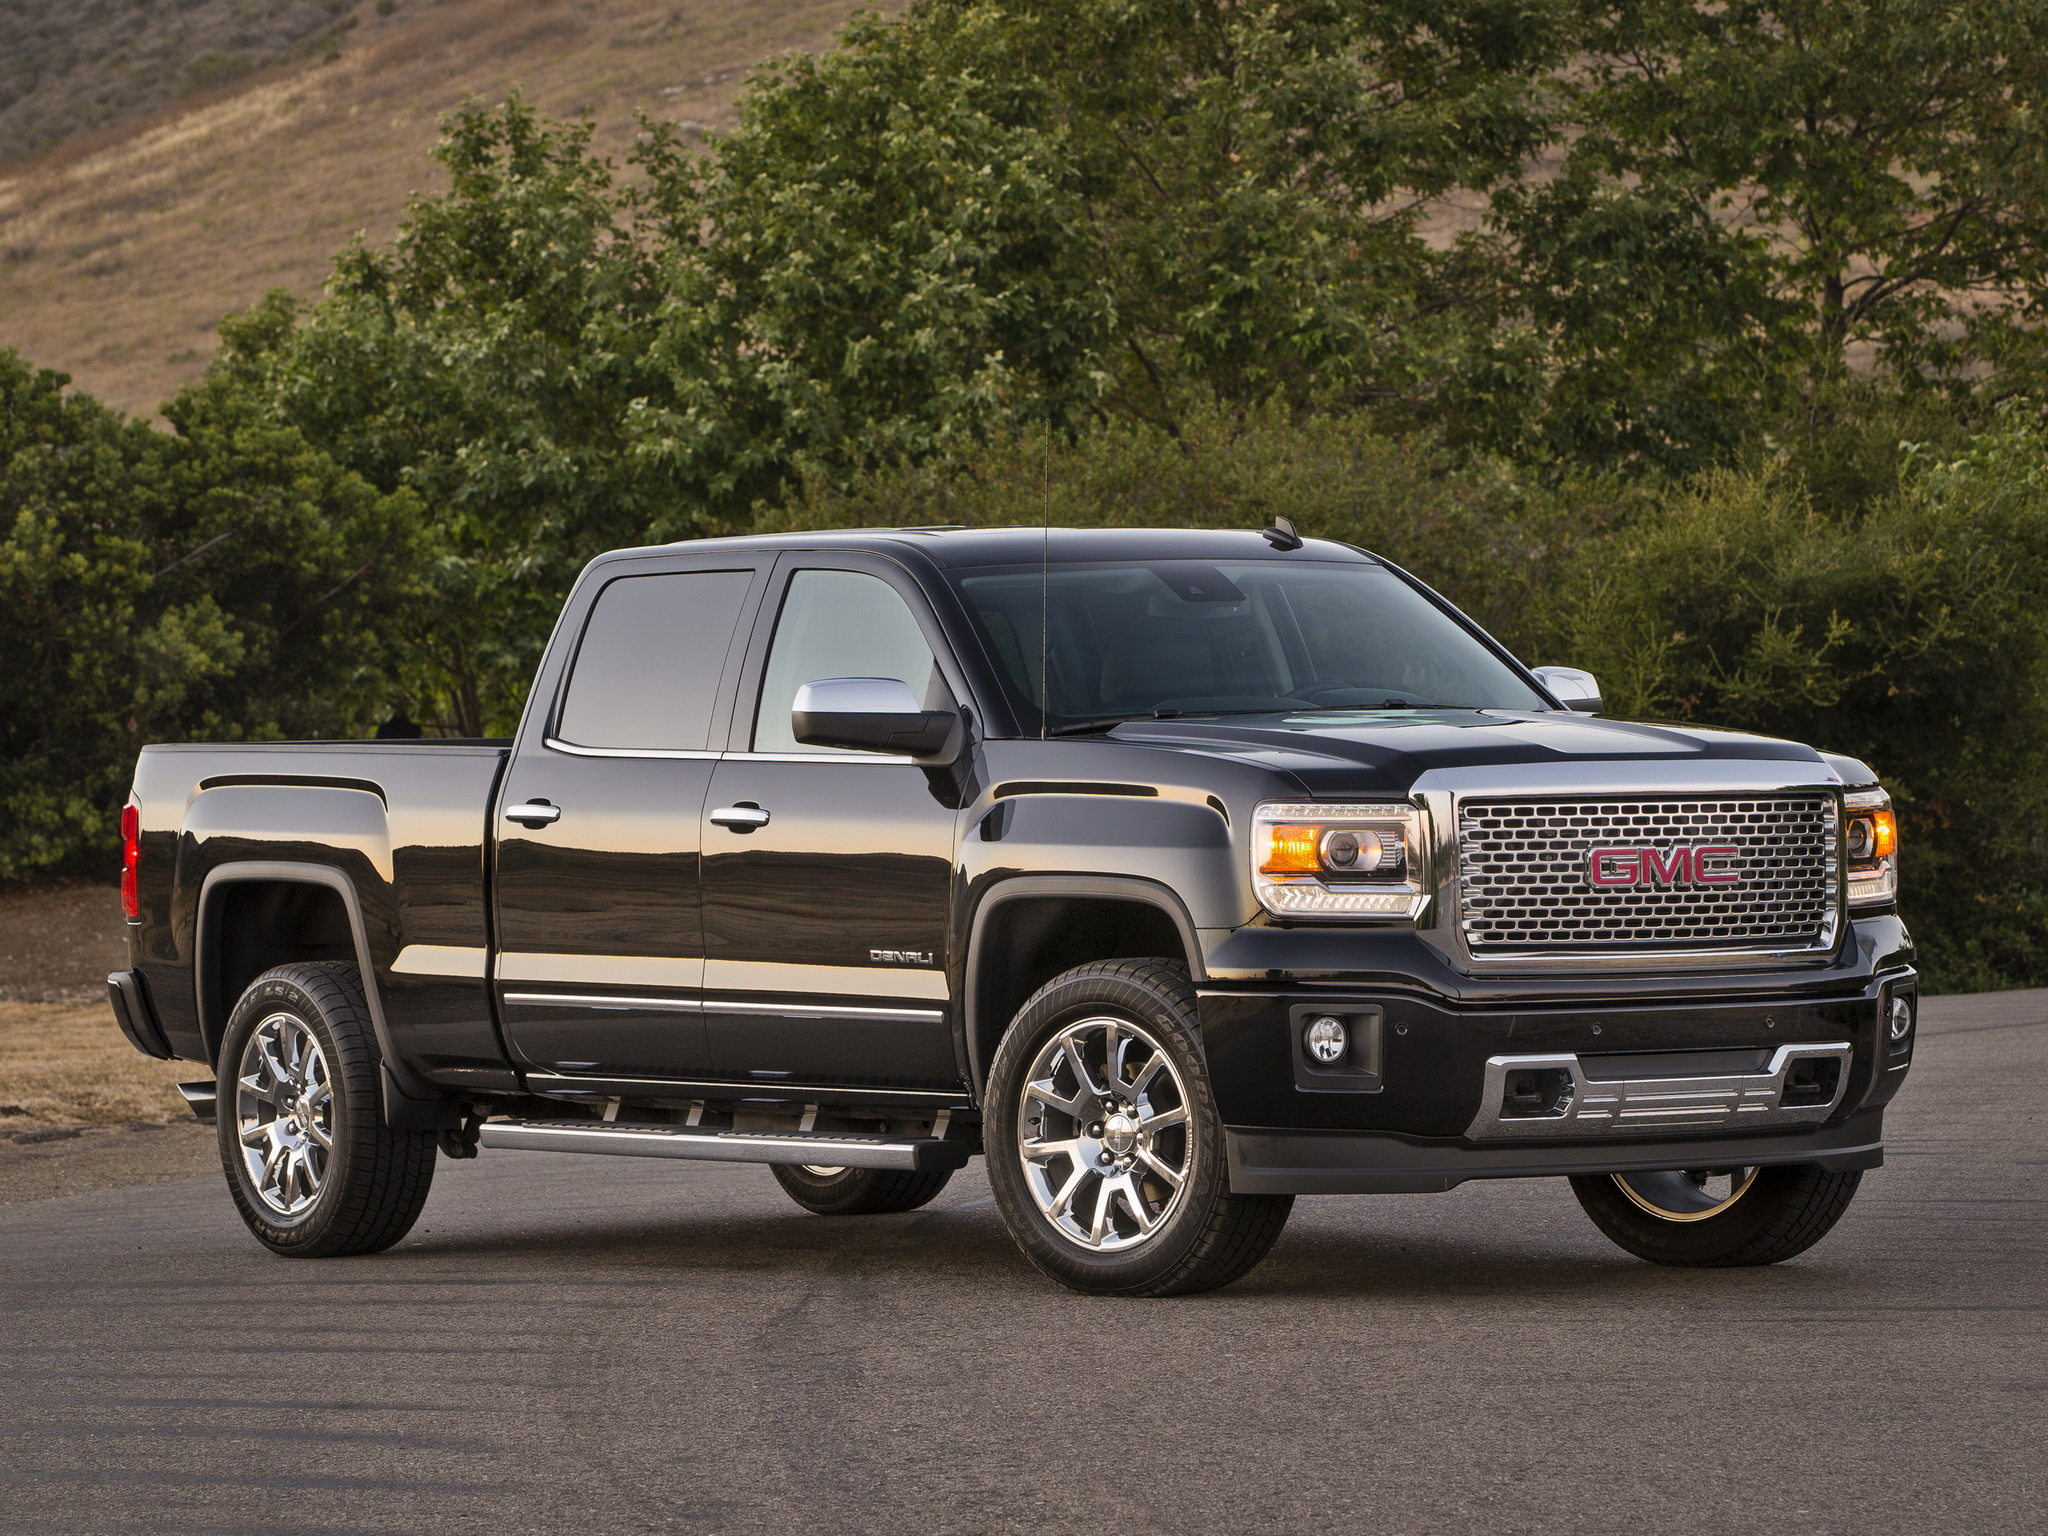 Gmc sierra photo - 2